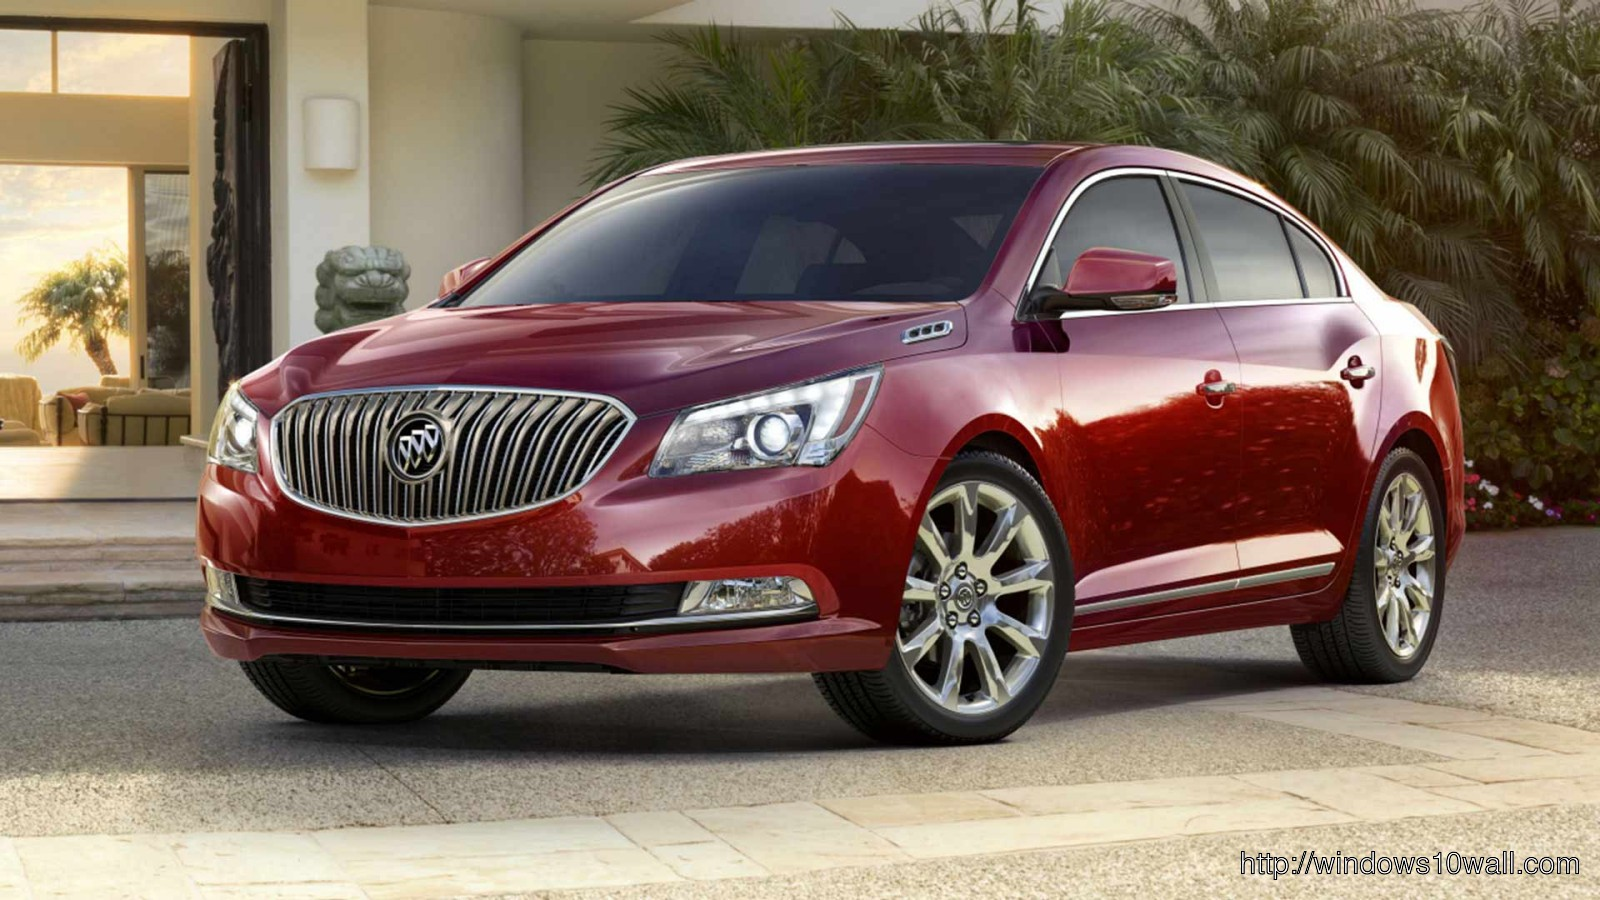 2014 buick Red Car Wallpaper